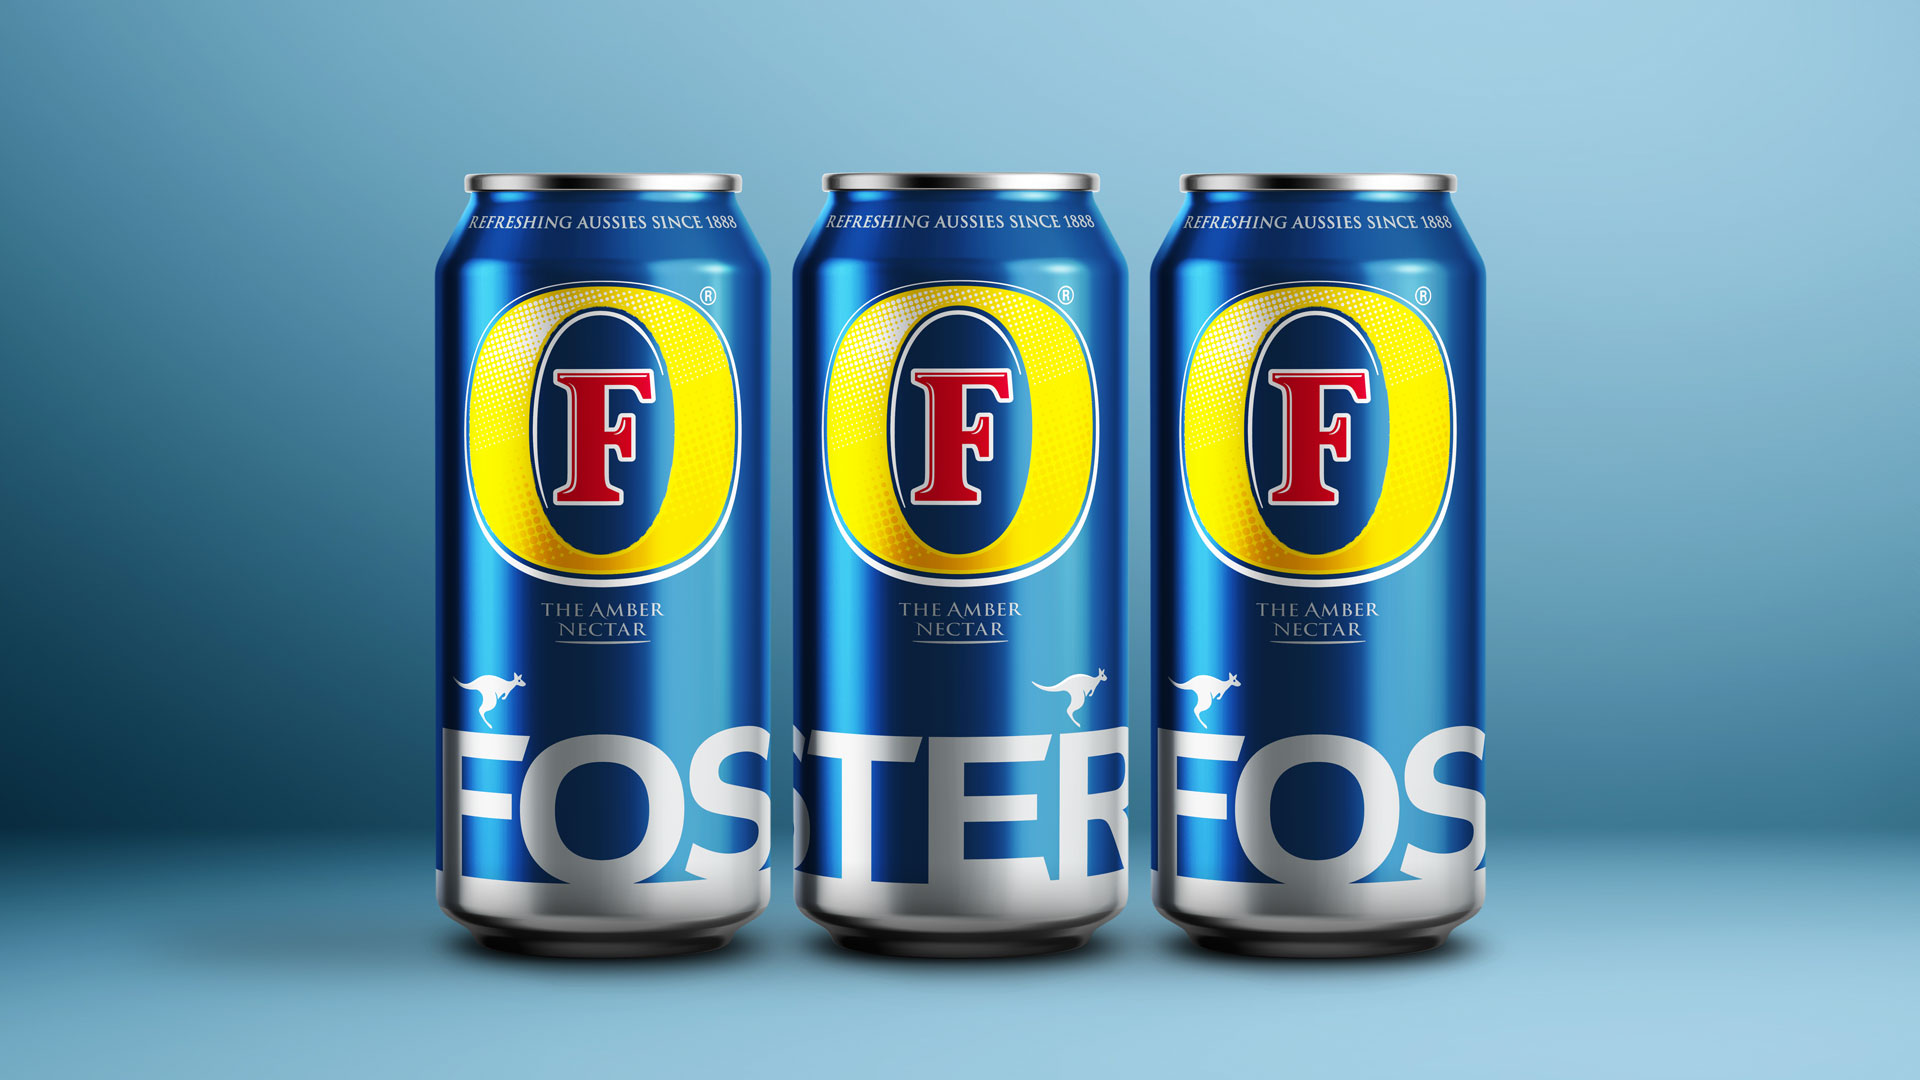 Foster's Can Design